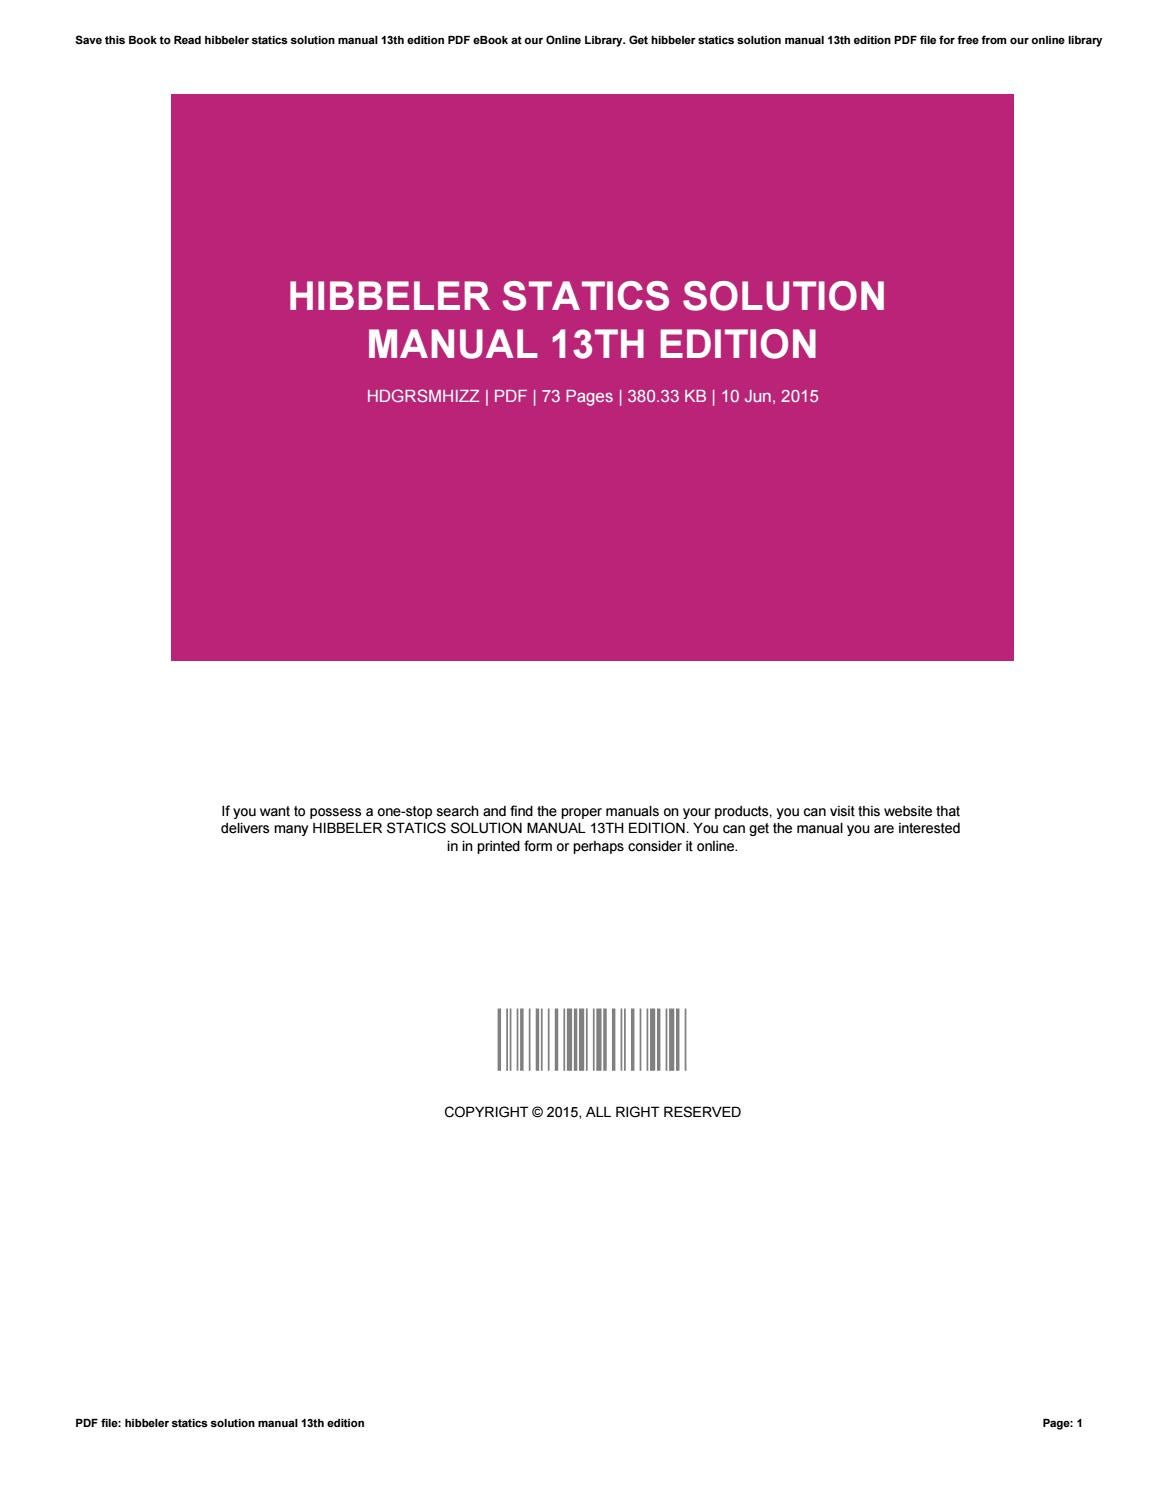 Hibbeler statics solution manual 13th edition by YvonneMartin4848 - issuu